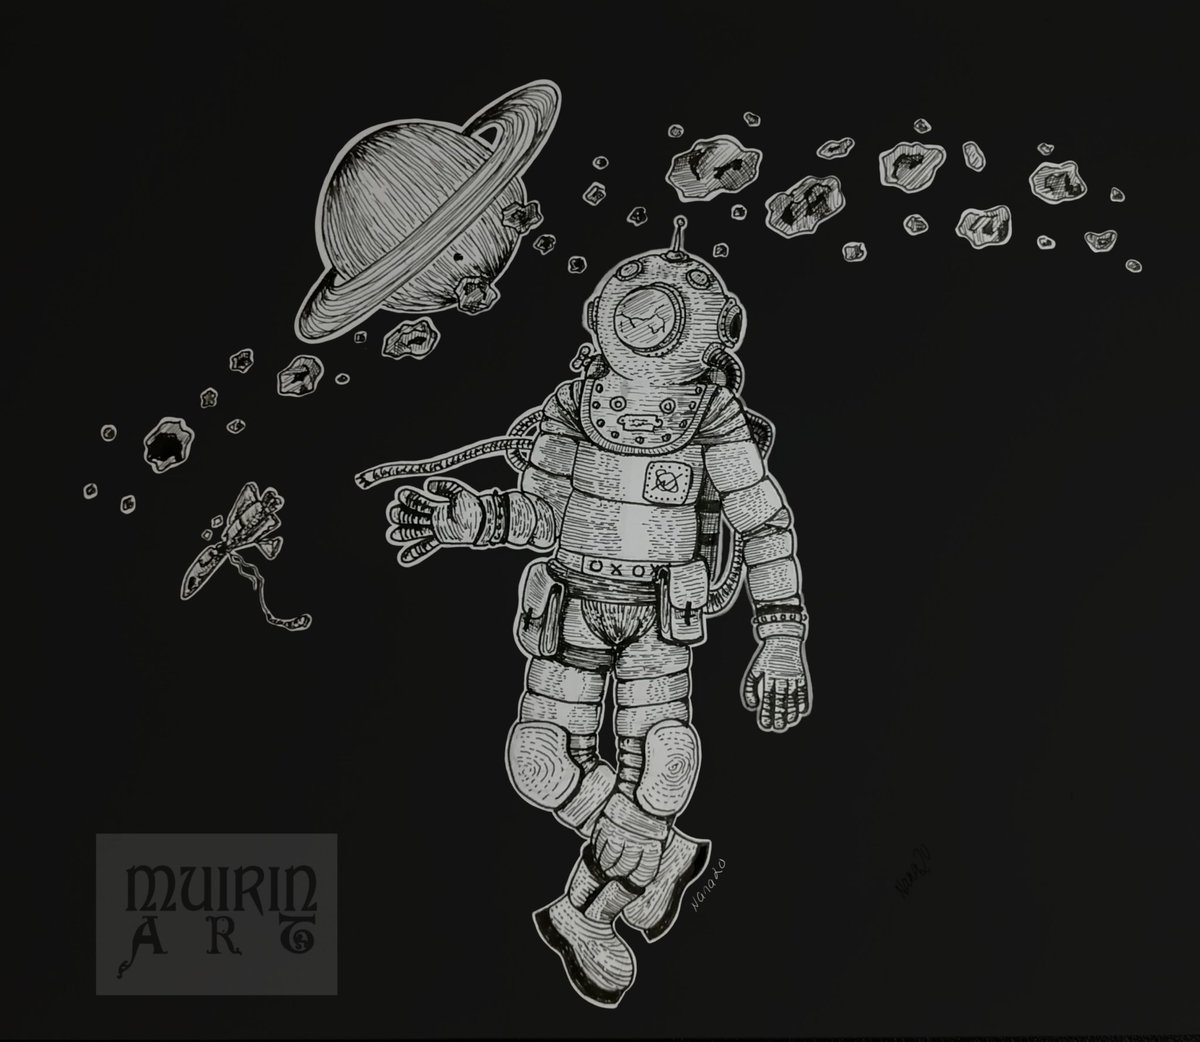 """""""Spaceman - Last journey"""" Pigma Microns on paper, background colored digitally with ArtFlow. #art #comicart #drawingoftheday #ink #spaceman #space #astronautpic.twitter.com/h9vRTPh6IX"""